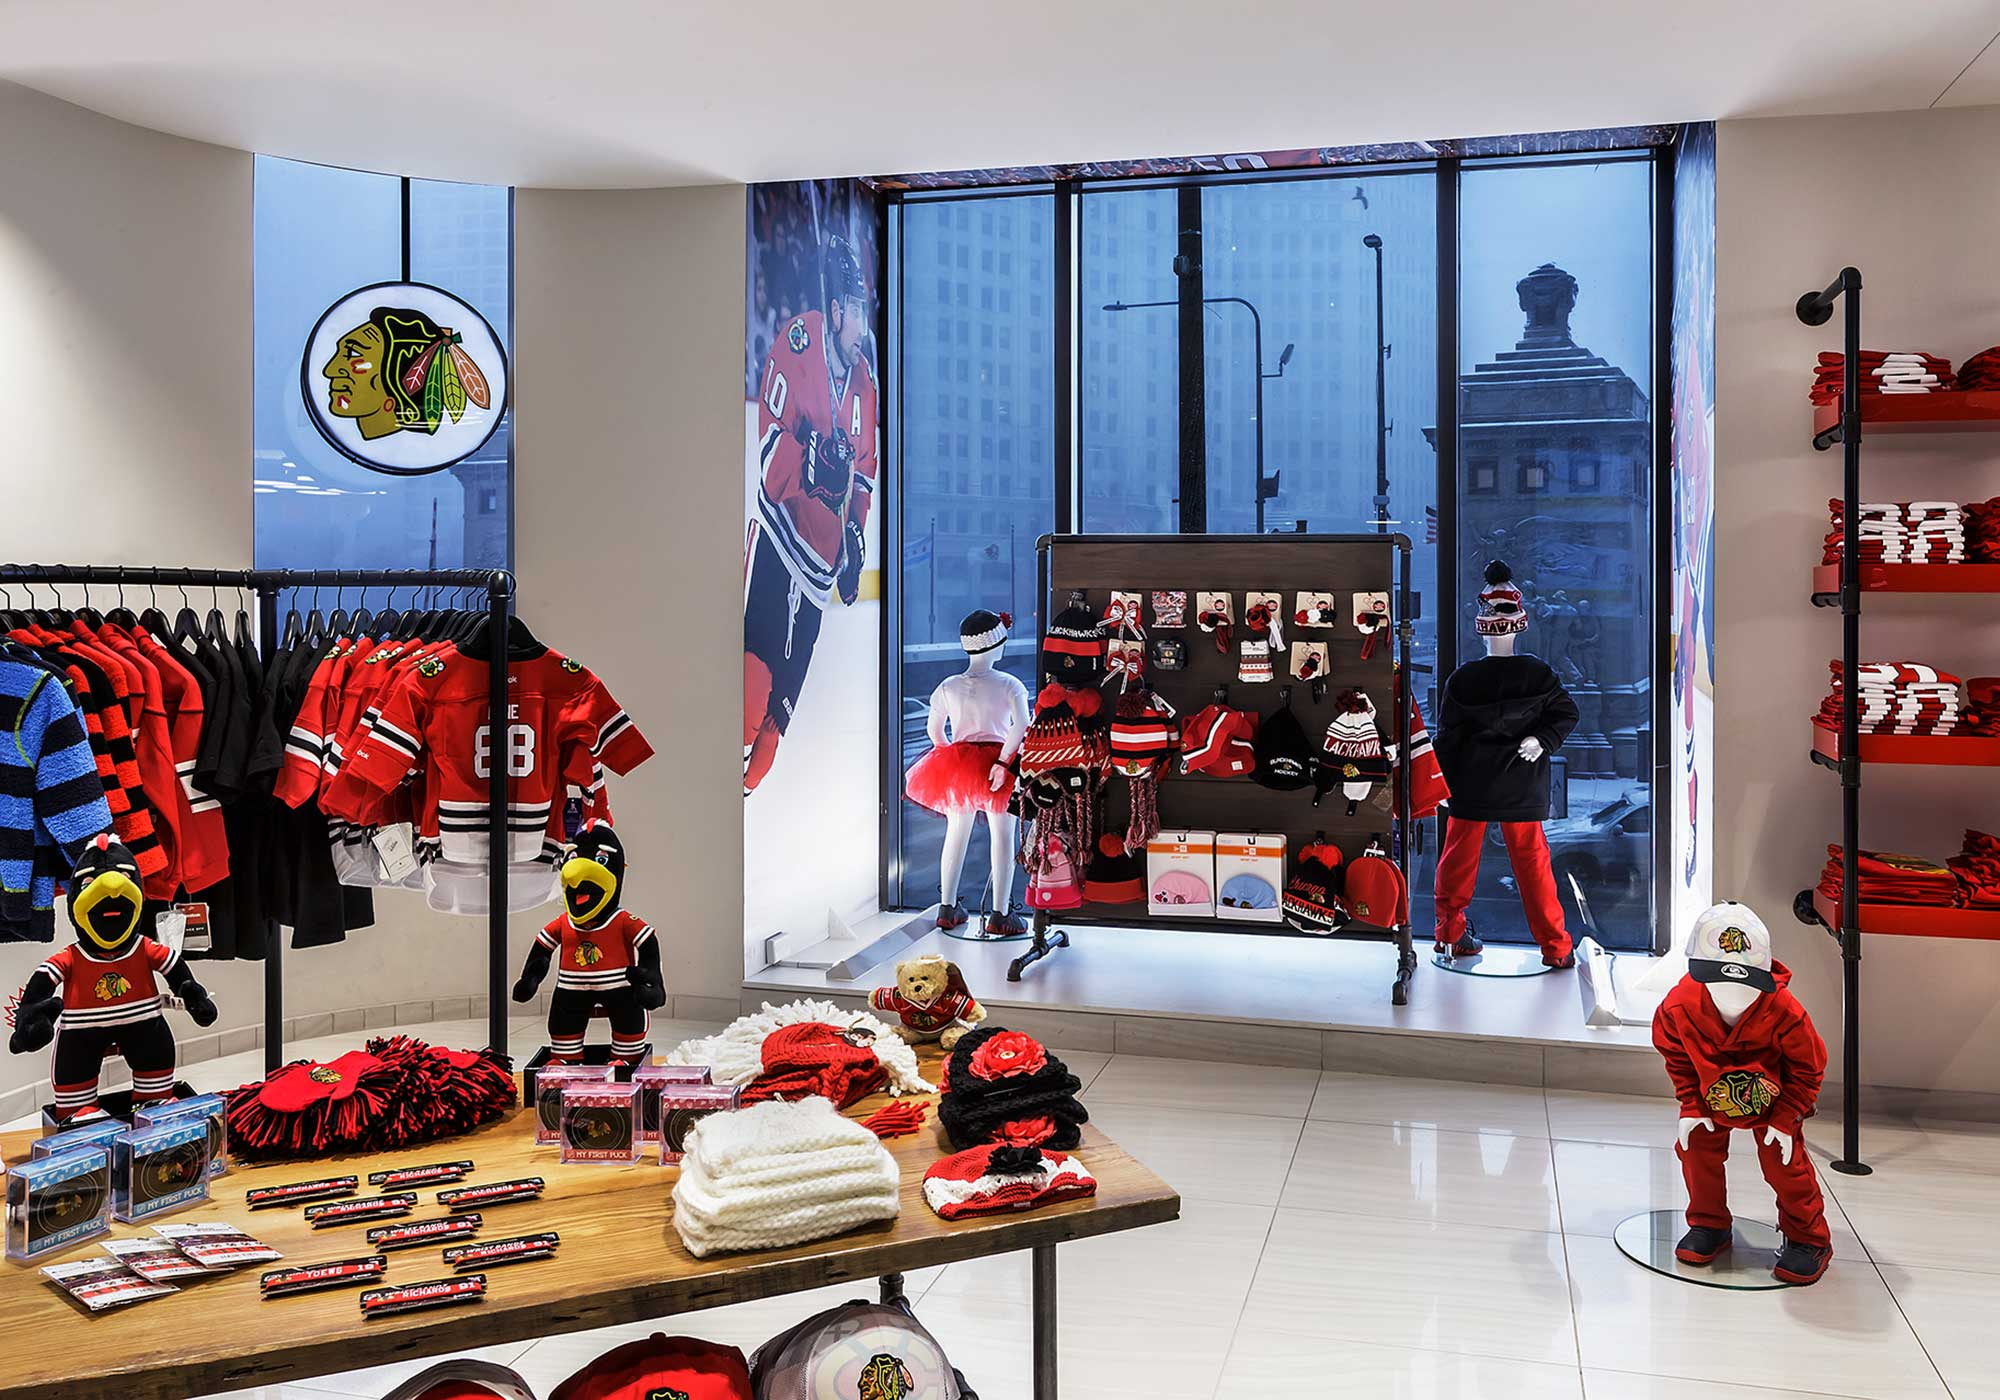 Display of children's clothing and stuffed animals with a window out onto the city in the background